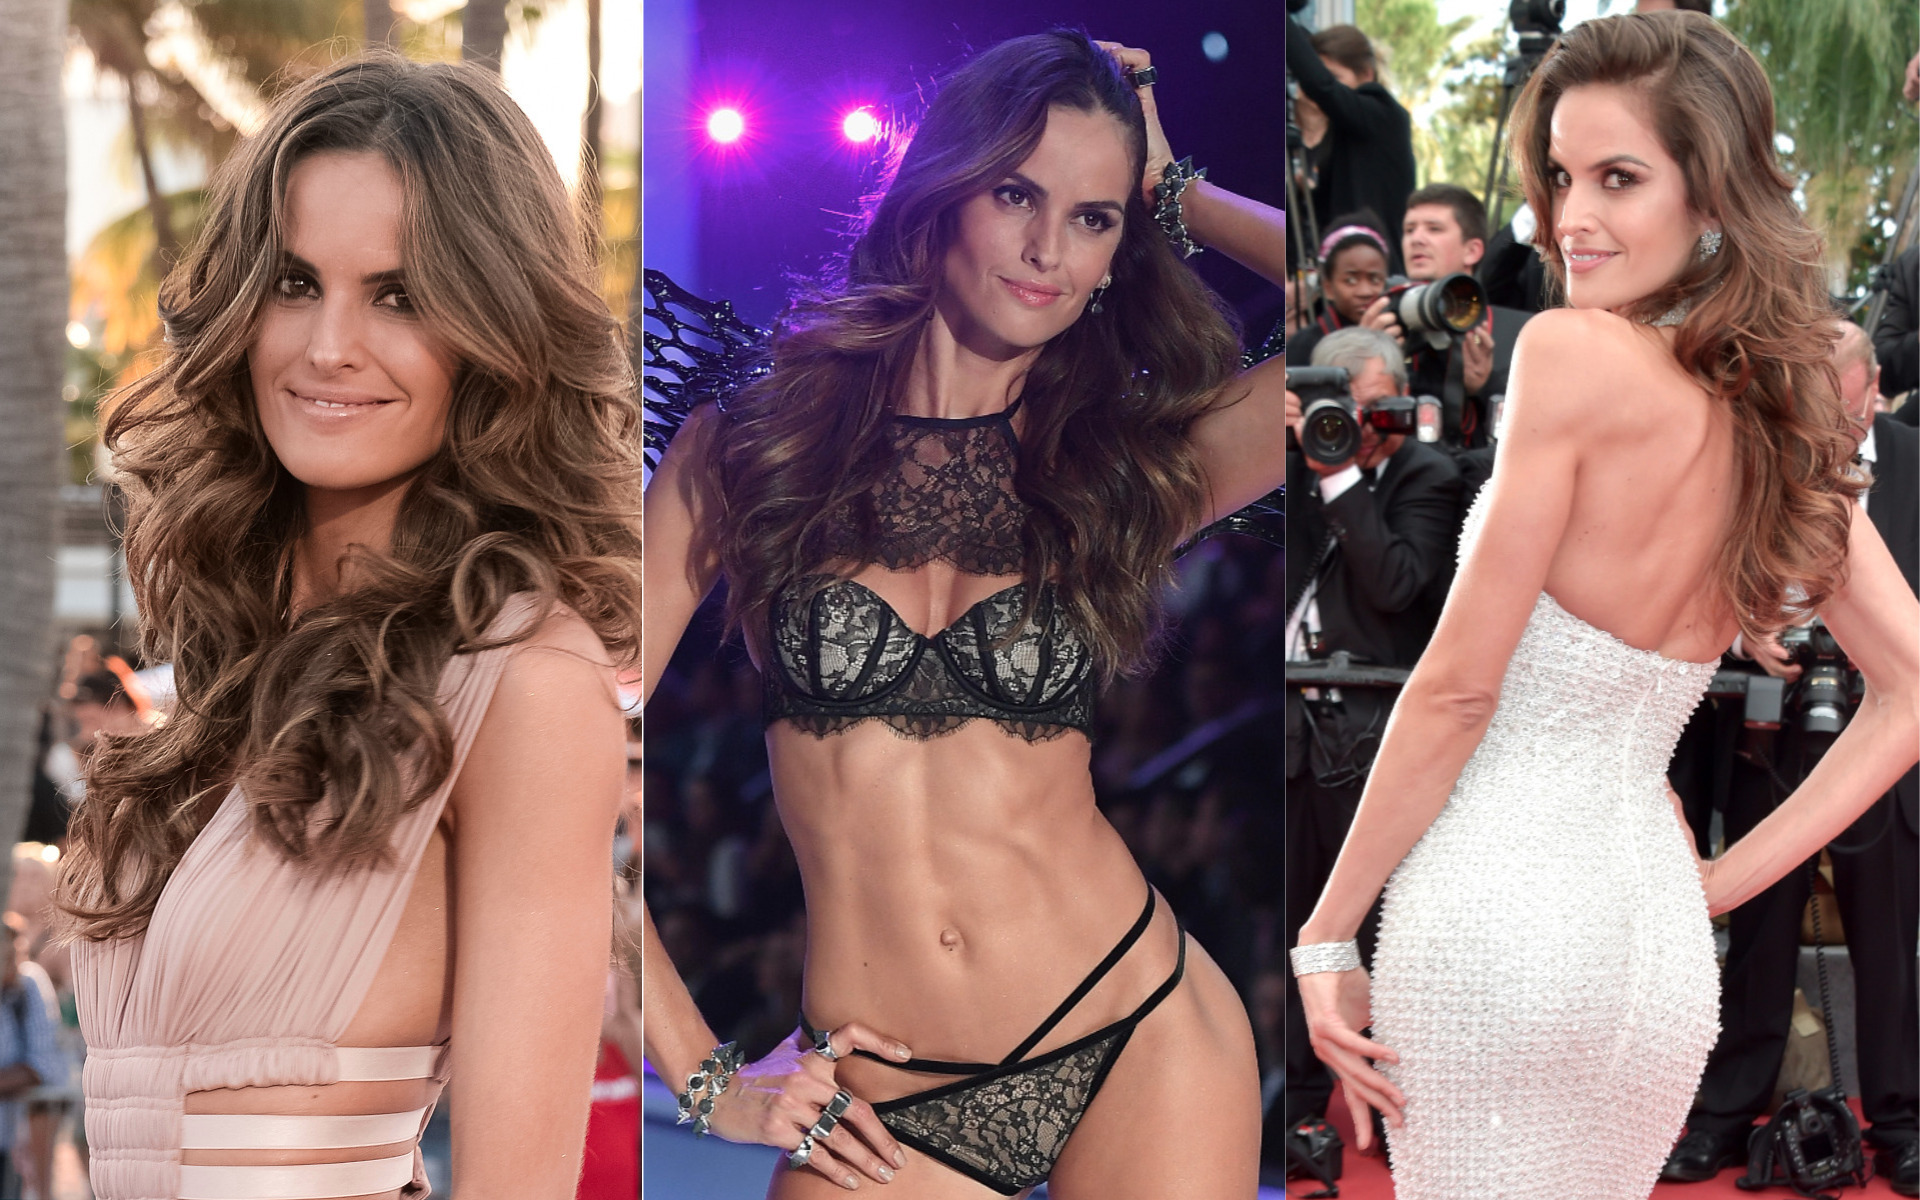 La angelical Izabel Goulart y su posible abstinencia sexual por culpa de Real Madrid